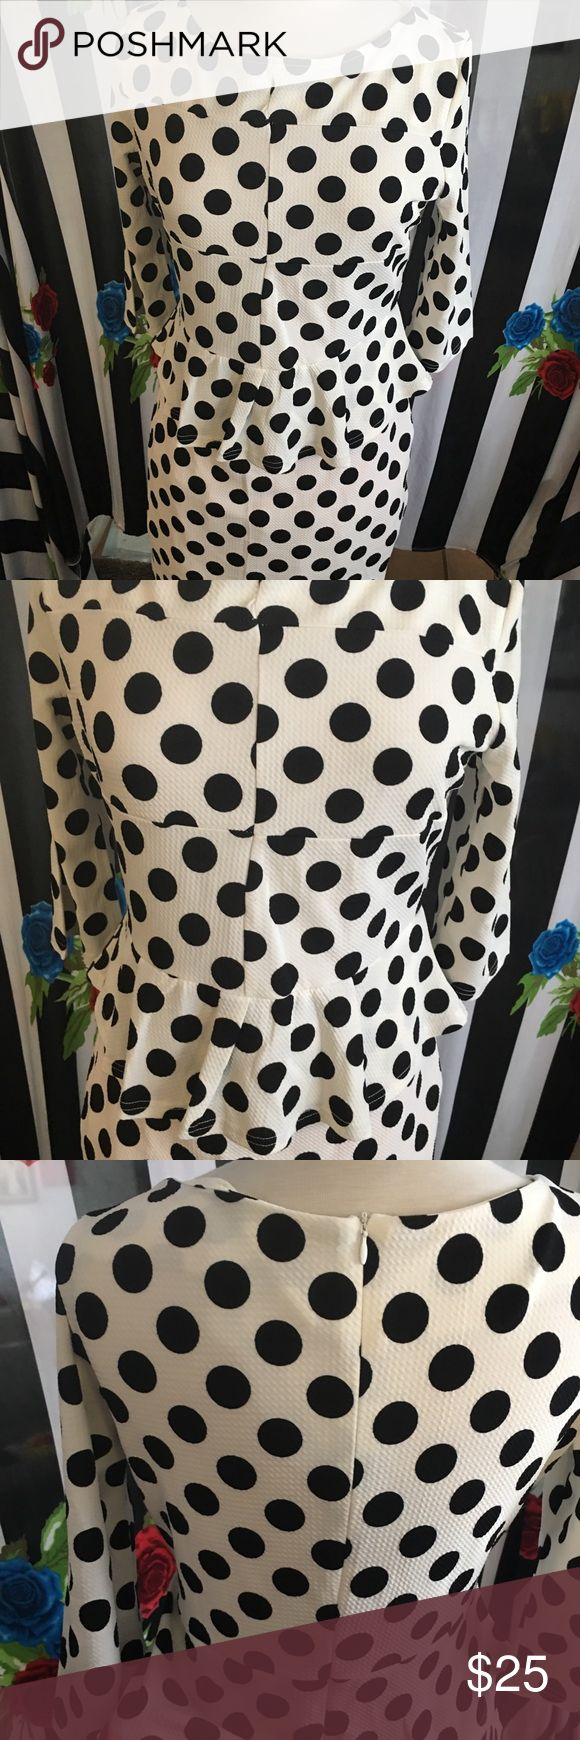 Super cute vintage inspired Pinup dress XL BNWOT Super cute vintage inspired Pinup dress XL. Very comfy. Lots of stretch. Polka dots. Perfect for any occasion Dresses Midi